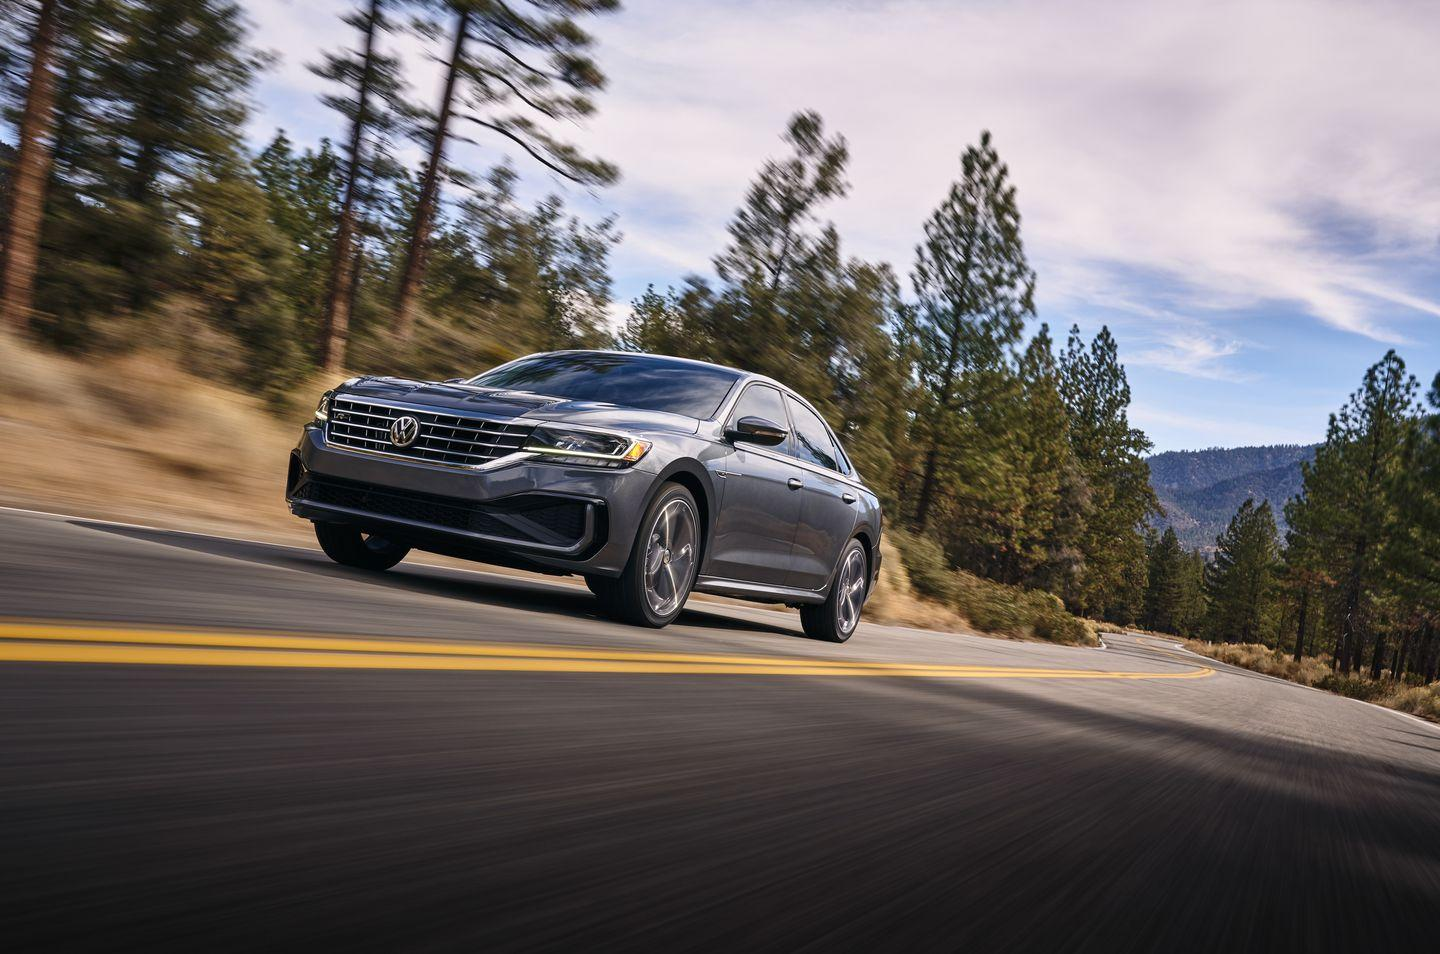 """<p>Last year's Passat was a solid vehicle with a roomy interior and refined ride quality. Based on <a href=""""https://www.caranddriver.com/reviews/2020-volkswagen-passat-prototype-driven"""" rel=""""nofollow noopener"""" target=""""_blank"""" data-ylk=""""slk:our brief drive in a prototype of the new Passat"""" class=""""link rapid-noclick-resp"""">our brief drive in a prototype of the new Passat</a>, those pluses remain. But then, they should-the car is basically the same as it was before.</p>"""